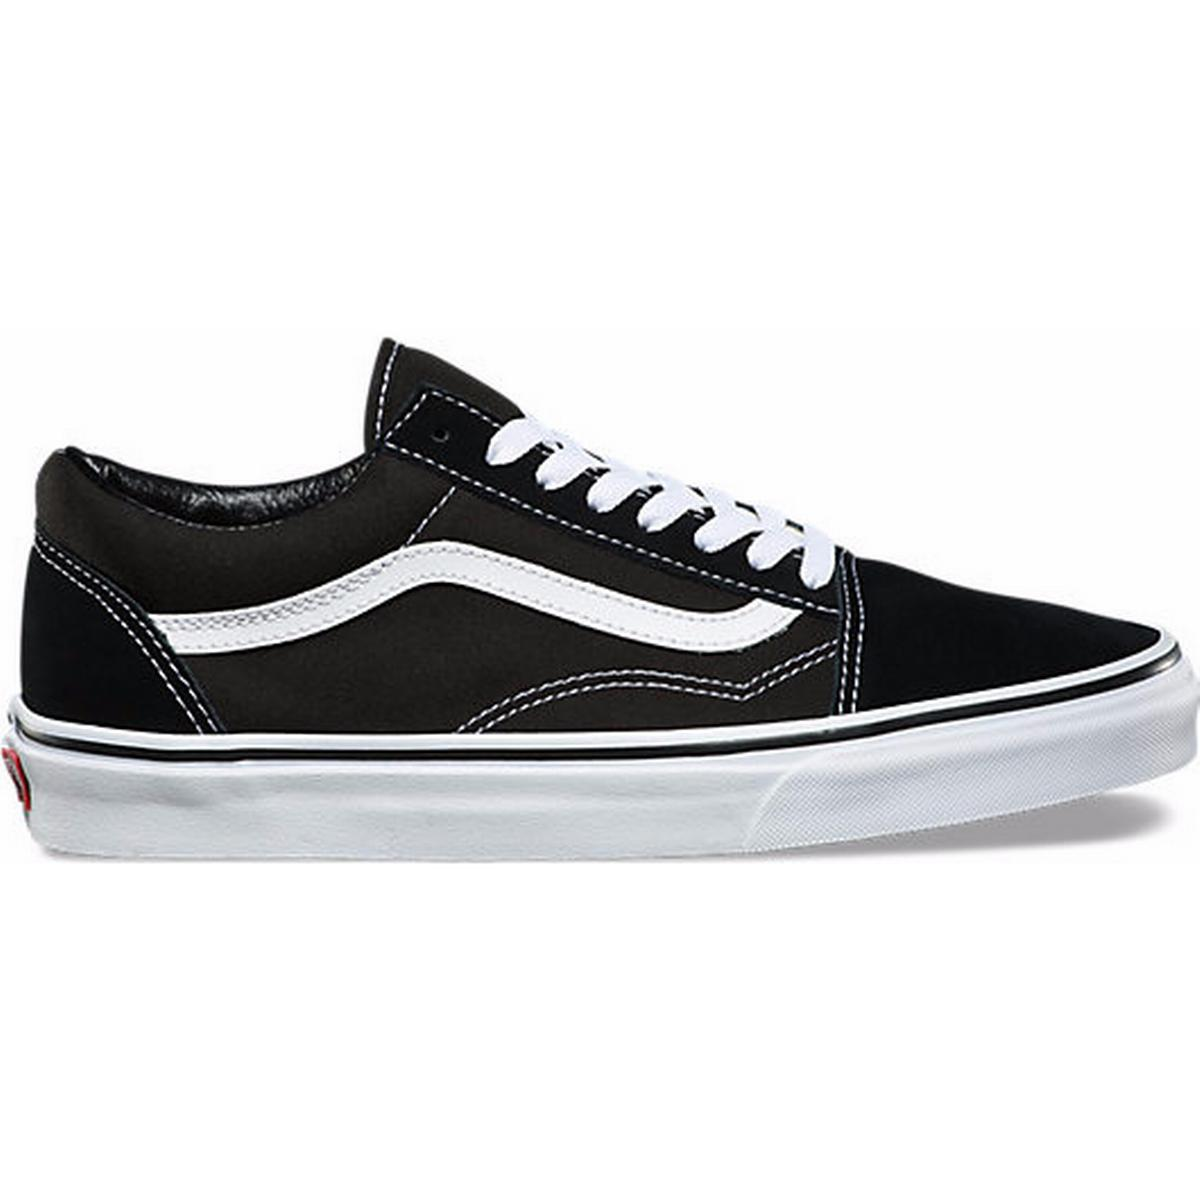 Vans Old Skool Pro Skate Shoes Classic WhiteBlack